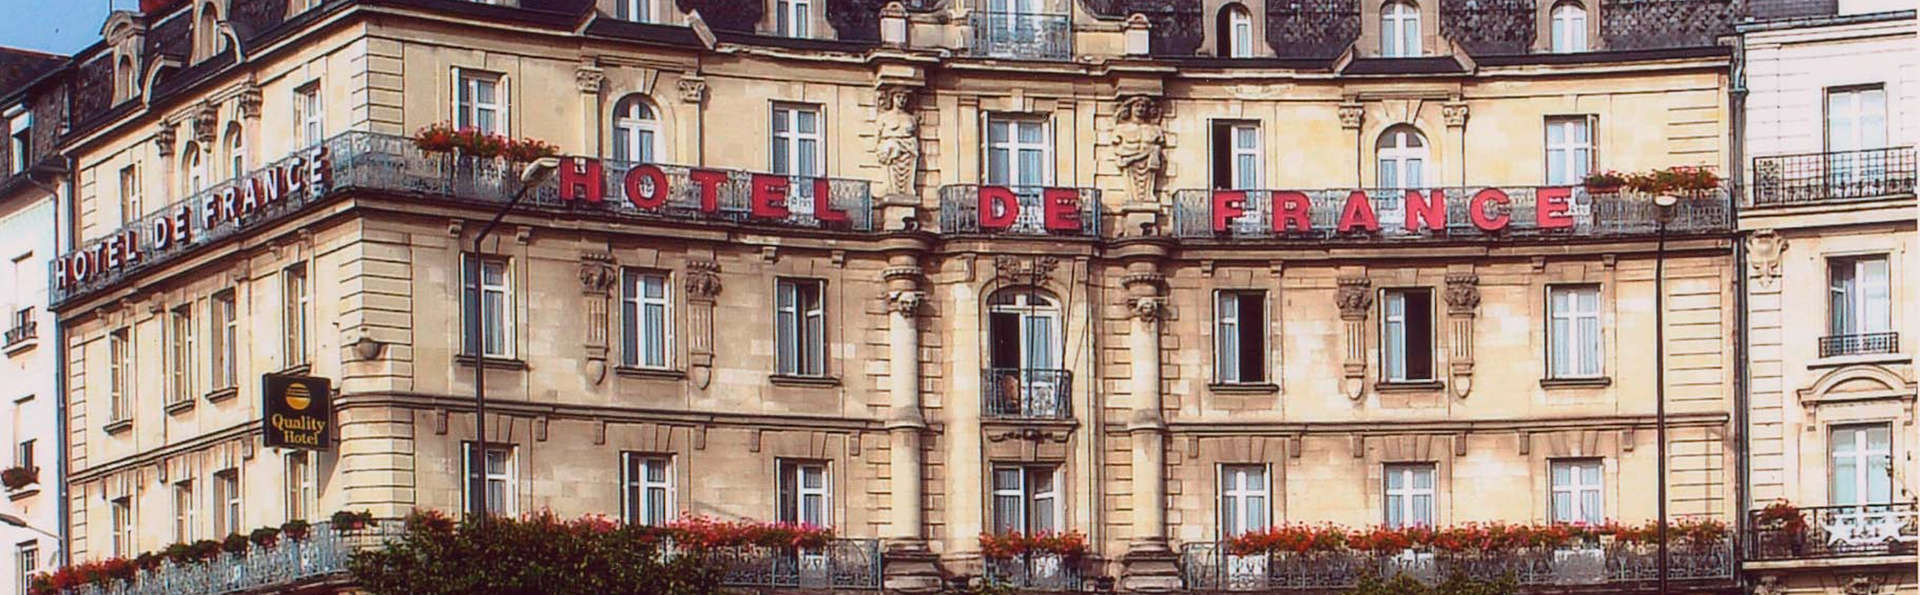 Hôtel de France - Angers - edit_front1.jpg